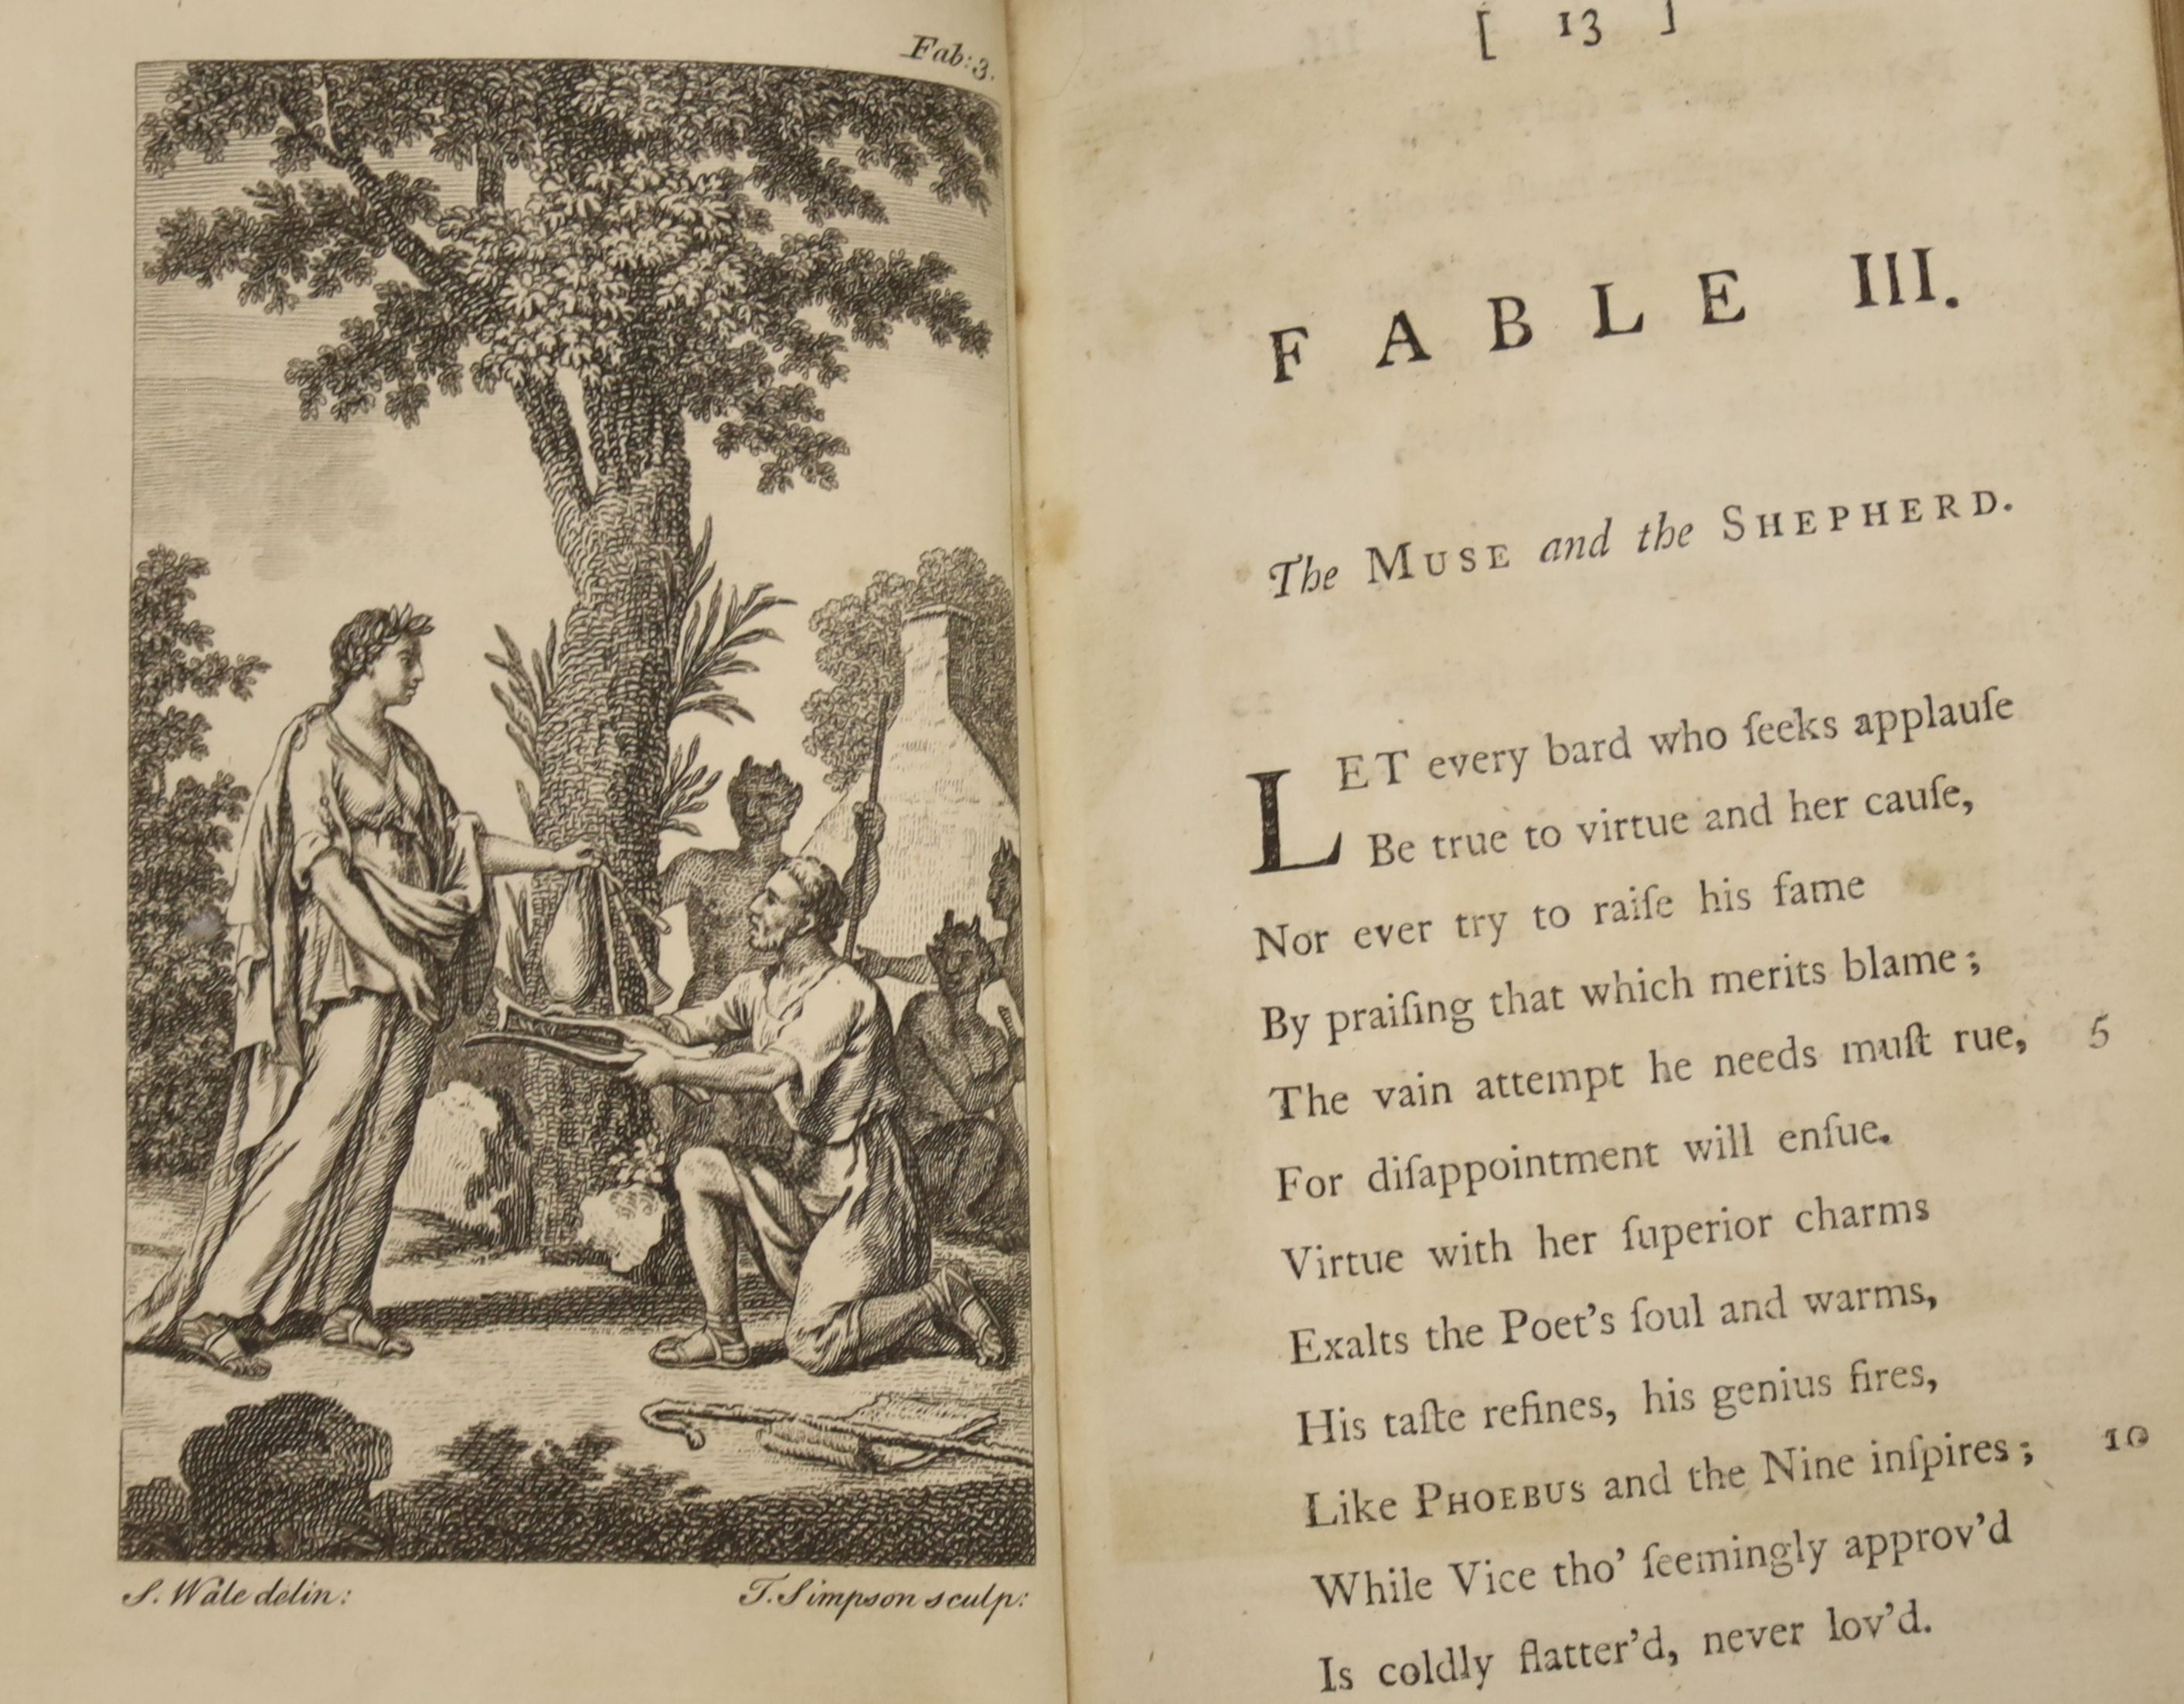 Wilkie, William - Fables, 8vo, calf, rebacked and re-cornered, with 18 engraved plates, Edward and - Image 5 of 5